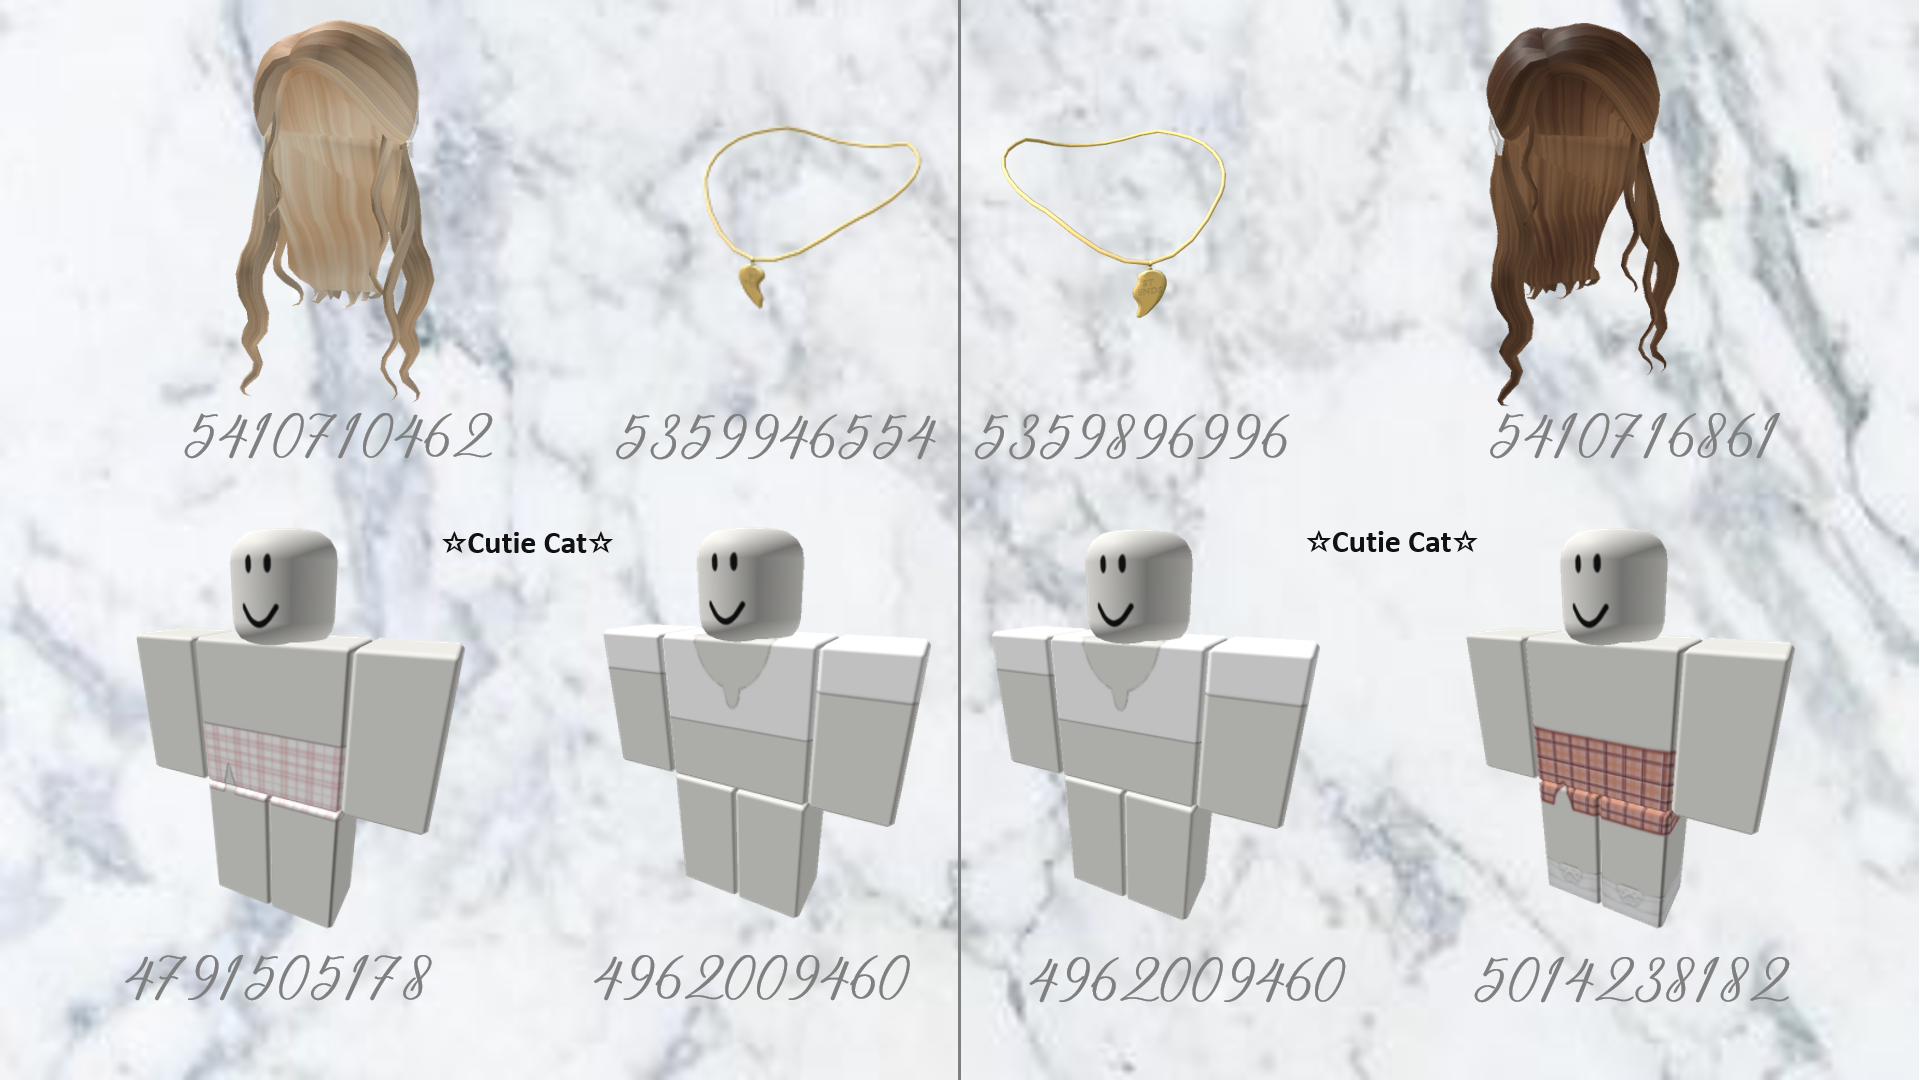 Bff Match Outfits Codes Roblox Codes Roblox Pictures Roblox Sets Heyy guys here are 50 brown roblox hair codes you can use on games such as bloxburg! bff match outfits codes roblox codes